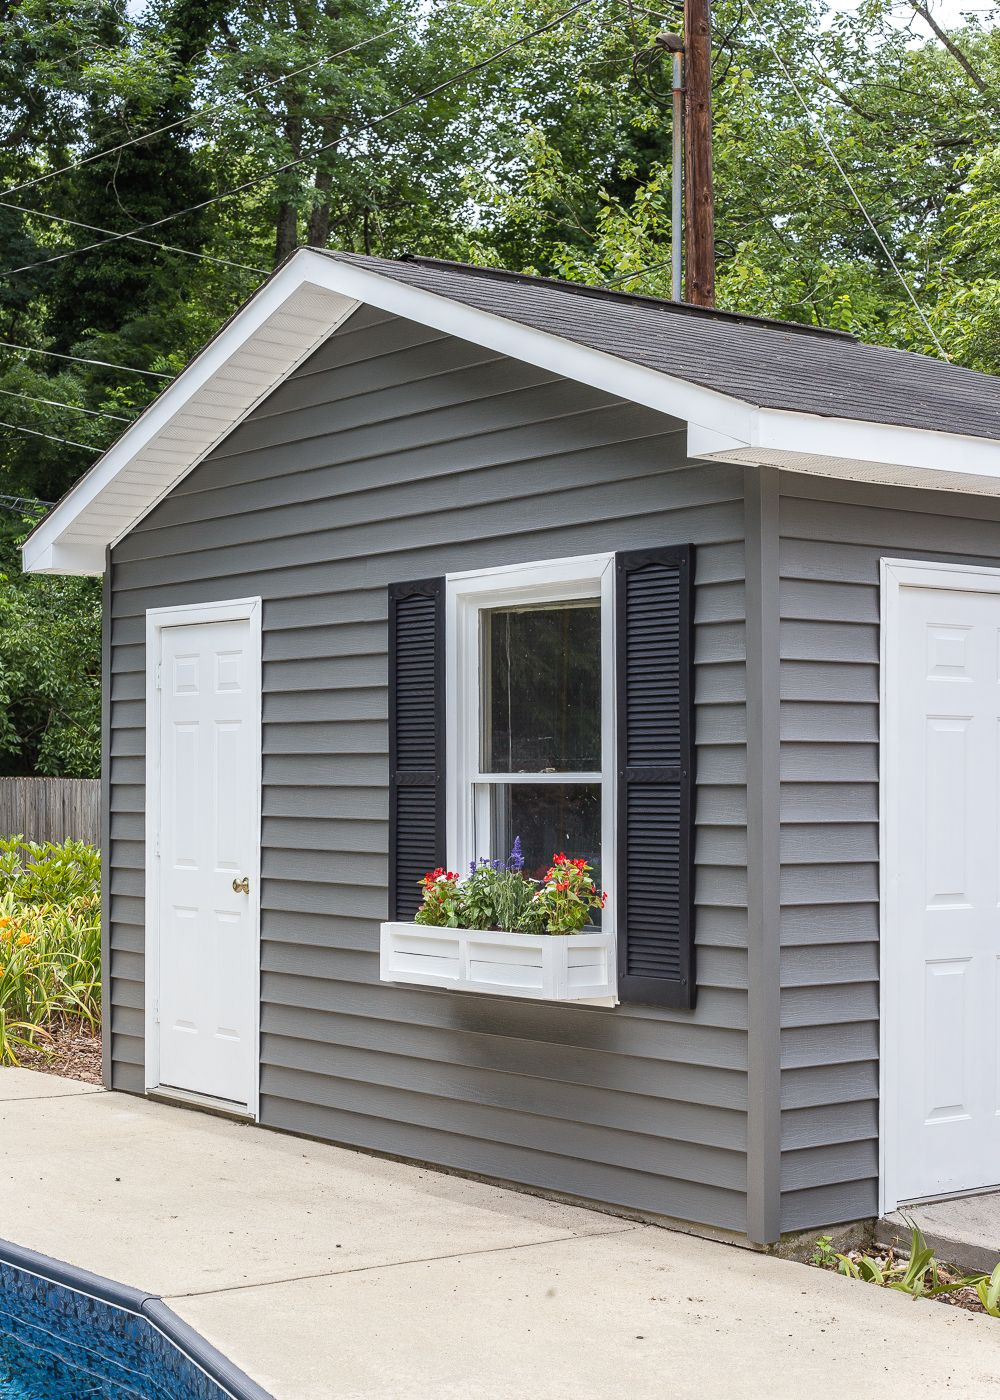 How To Paint Vinyl Siding Pool Shed Makeover Pool Shed Shed Makeover Vinyl Siding